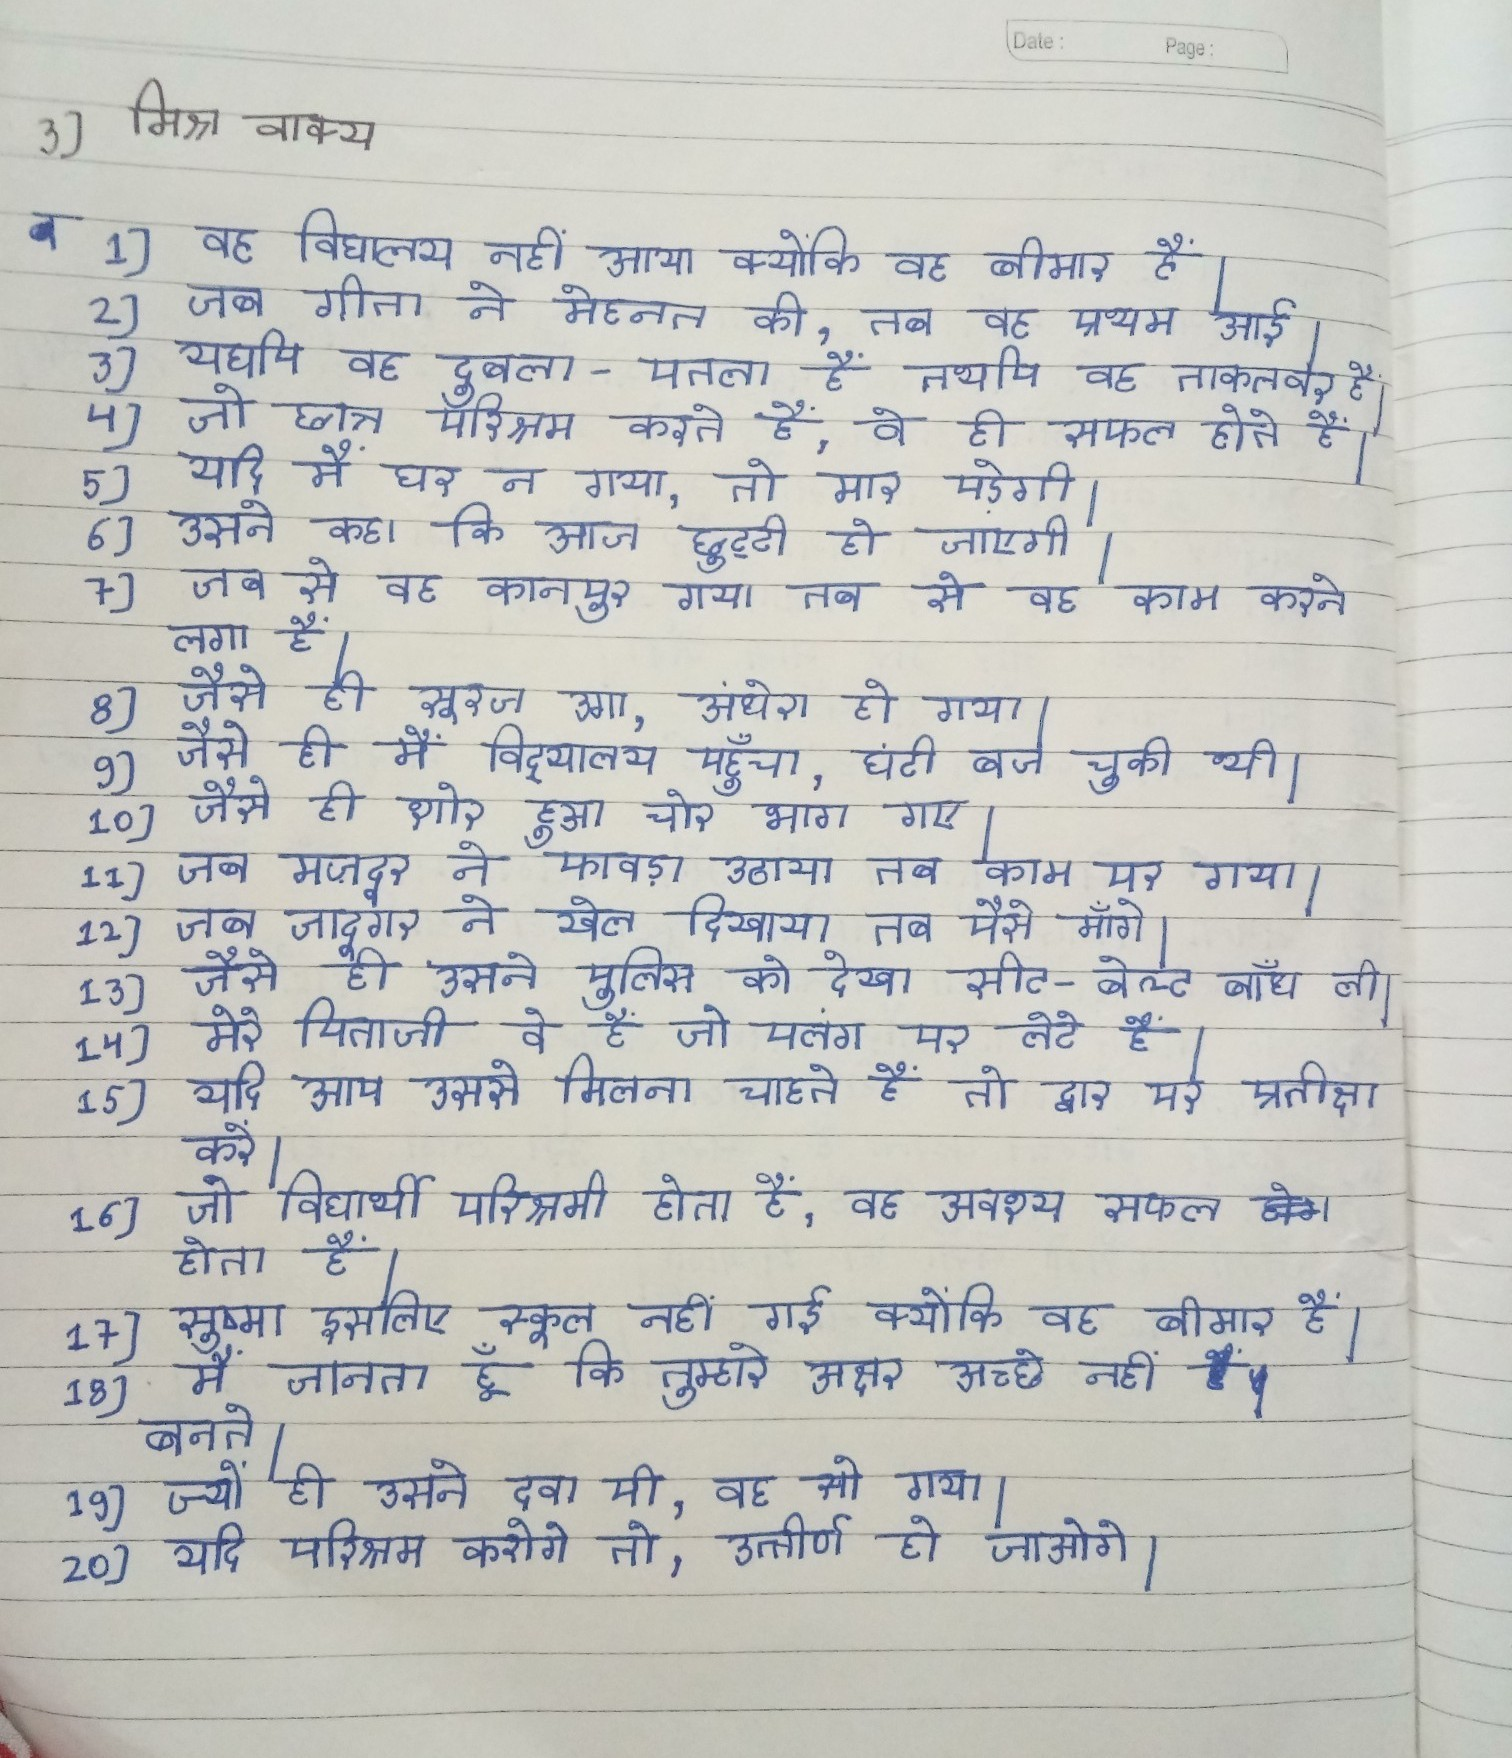 20 examples of saral mishyrit and sayunkt vakya in hindi - Brainly in